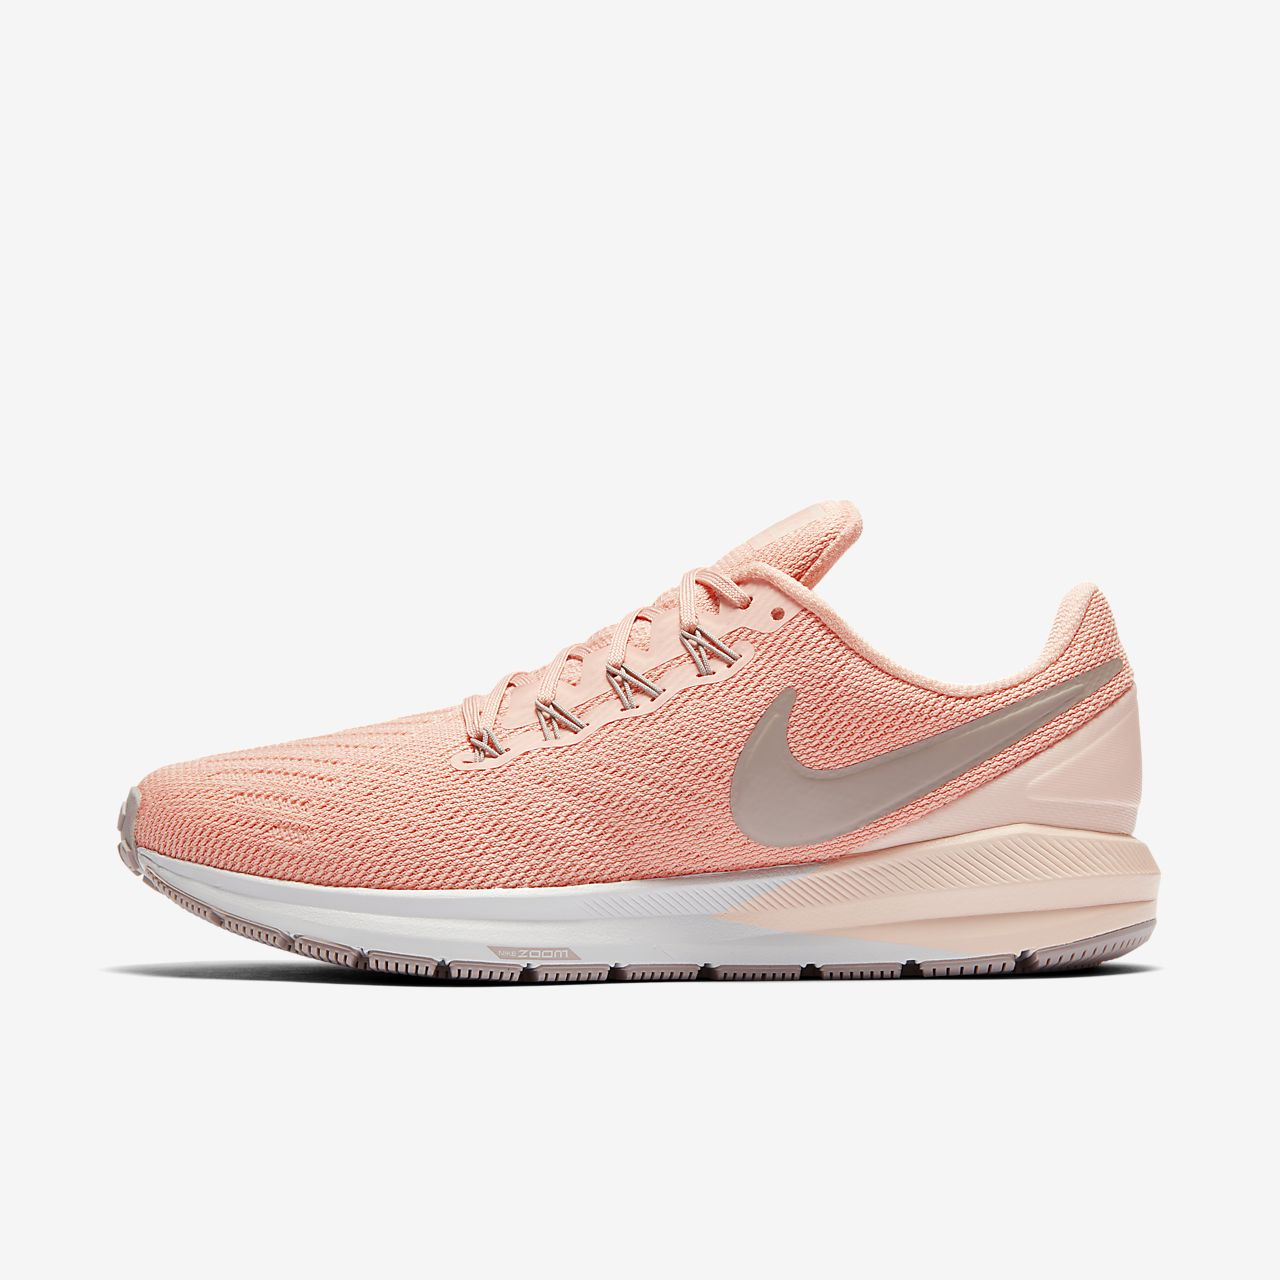 Sapatilhas de running Nike Air Zoom Structure 22 para mulher